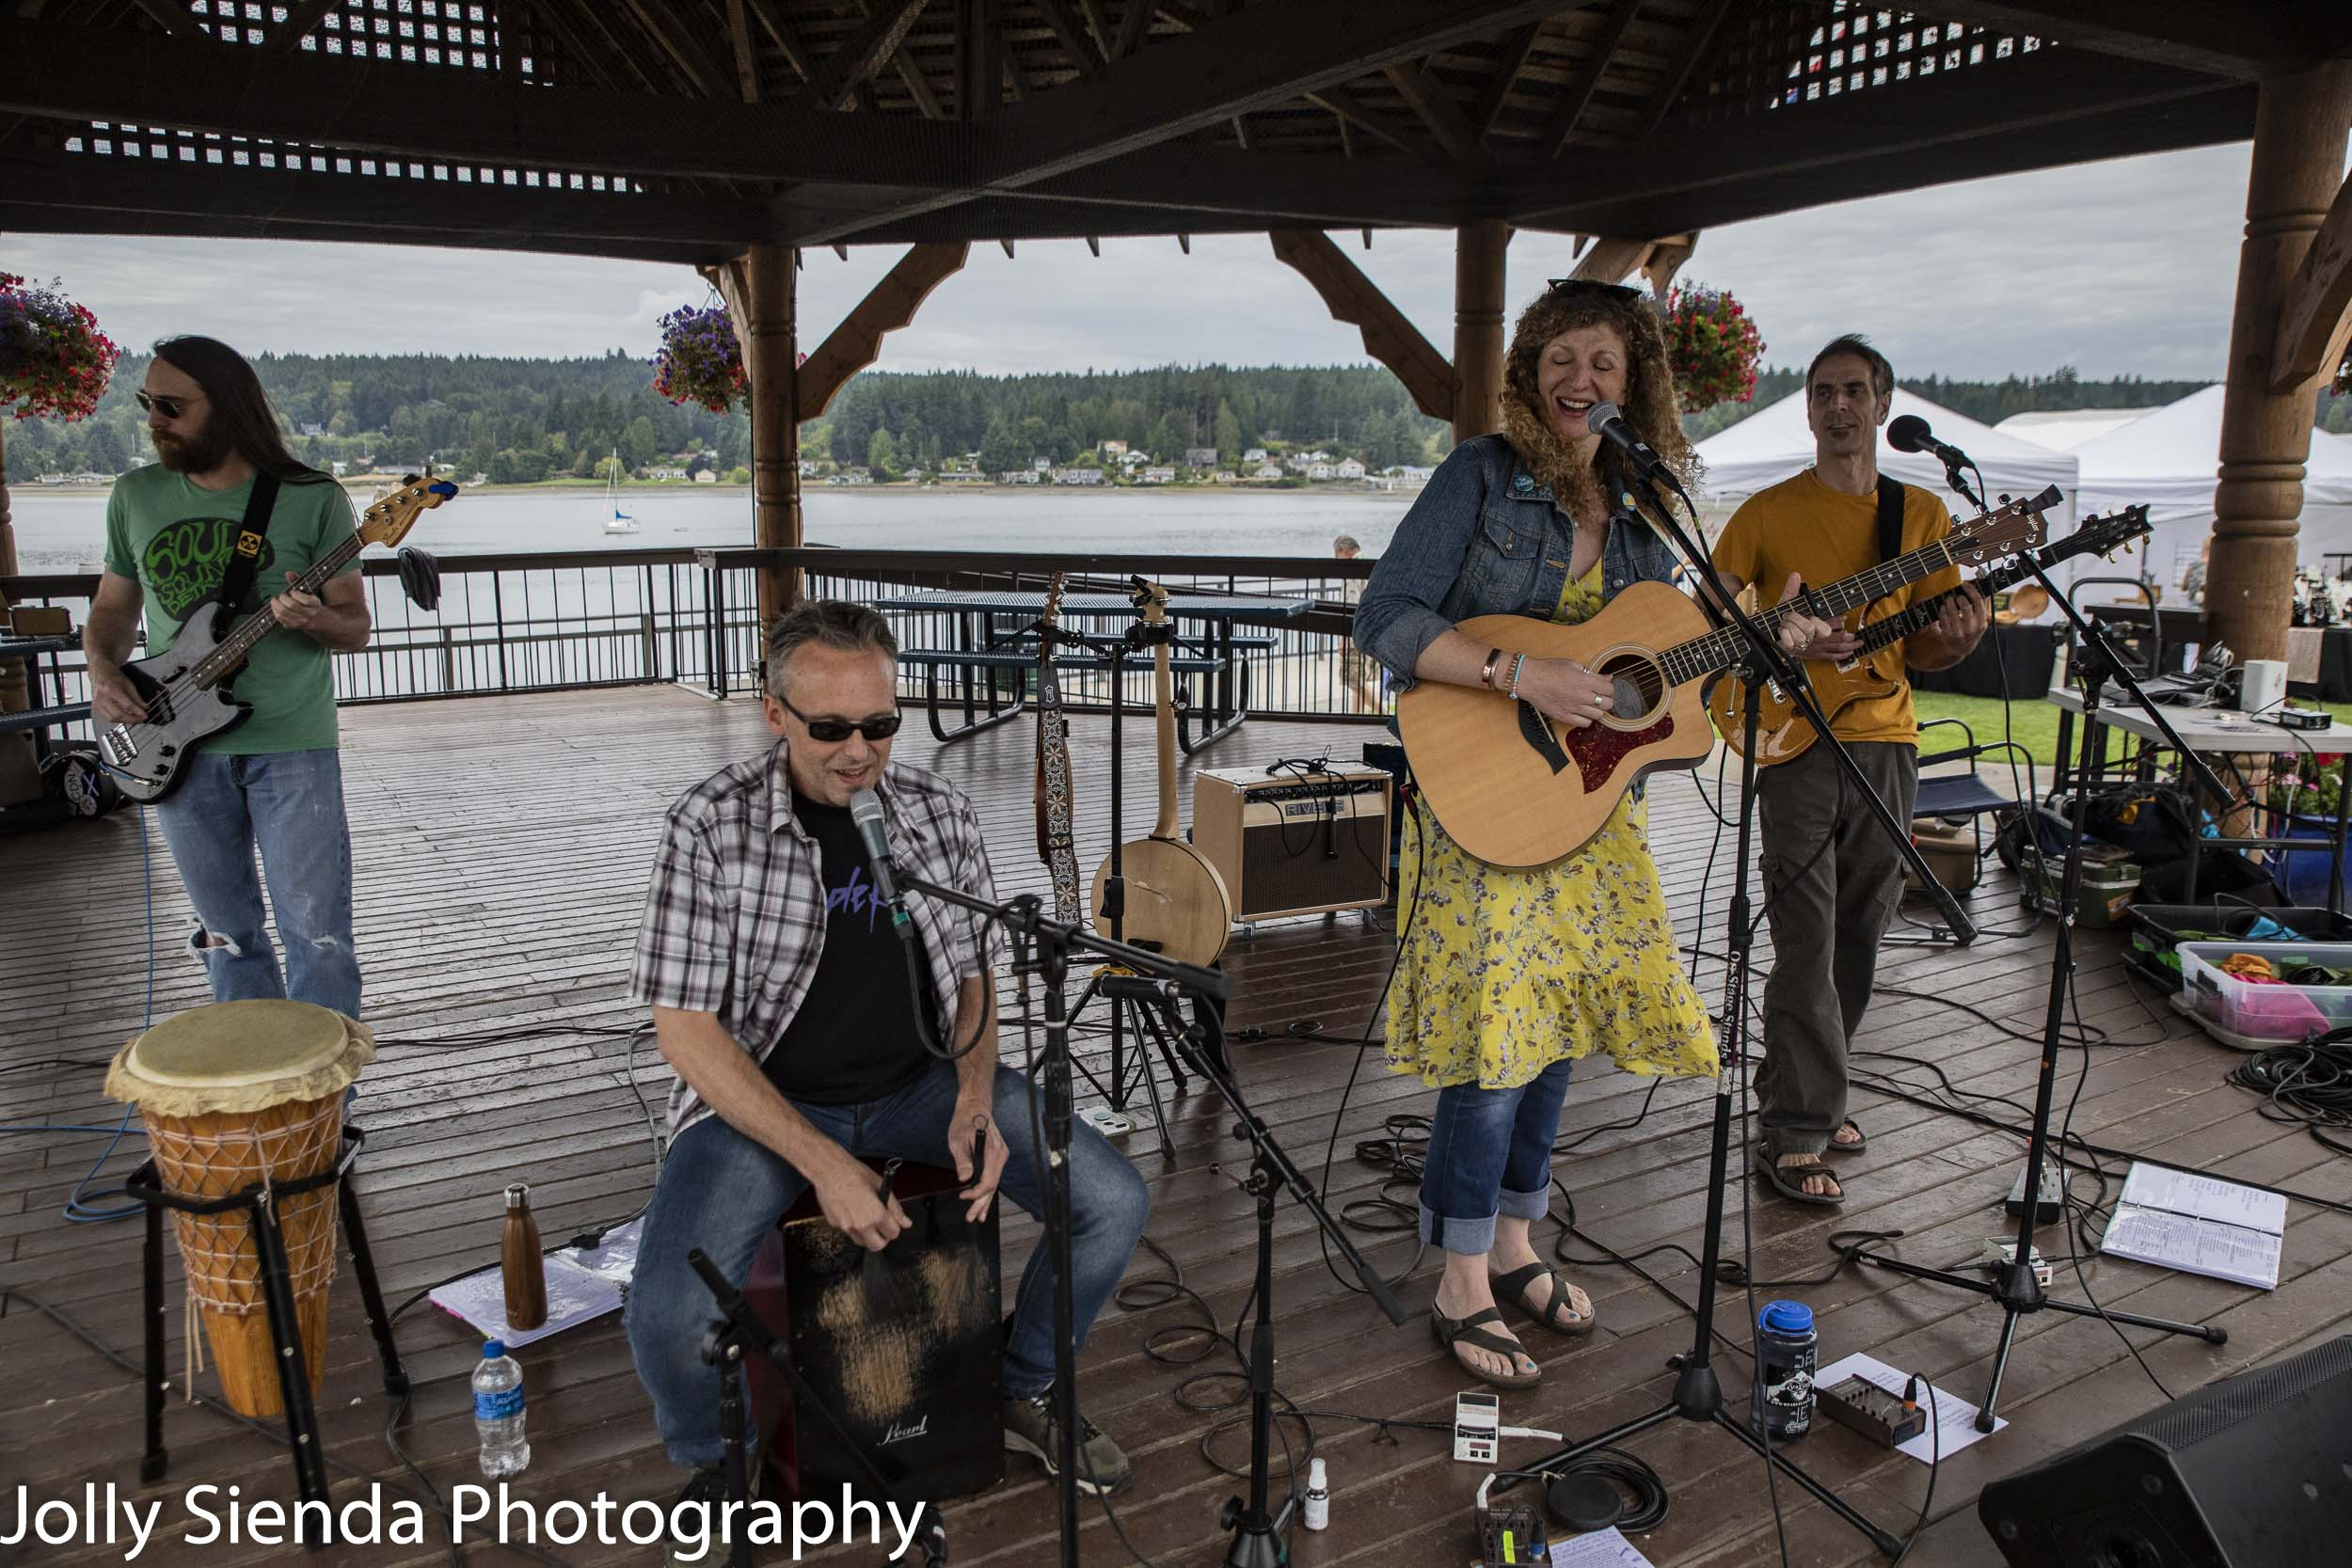 SeaStar performs at the gazebo on at the Poulsbo Waterfront Marina Park for the Poulsbo Art Festival, Jolly Sienda Photography